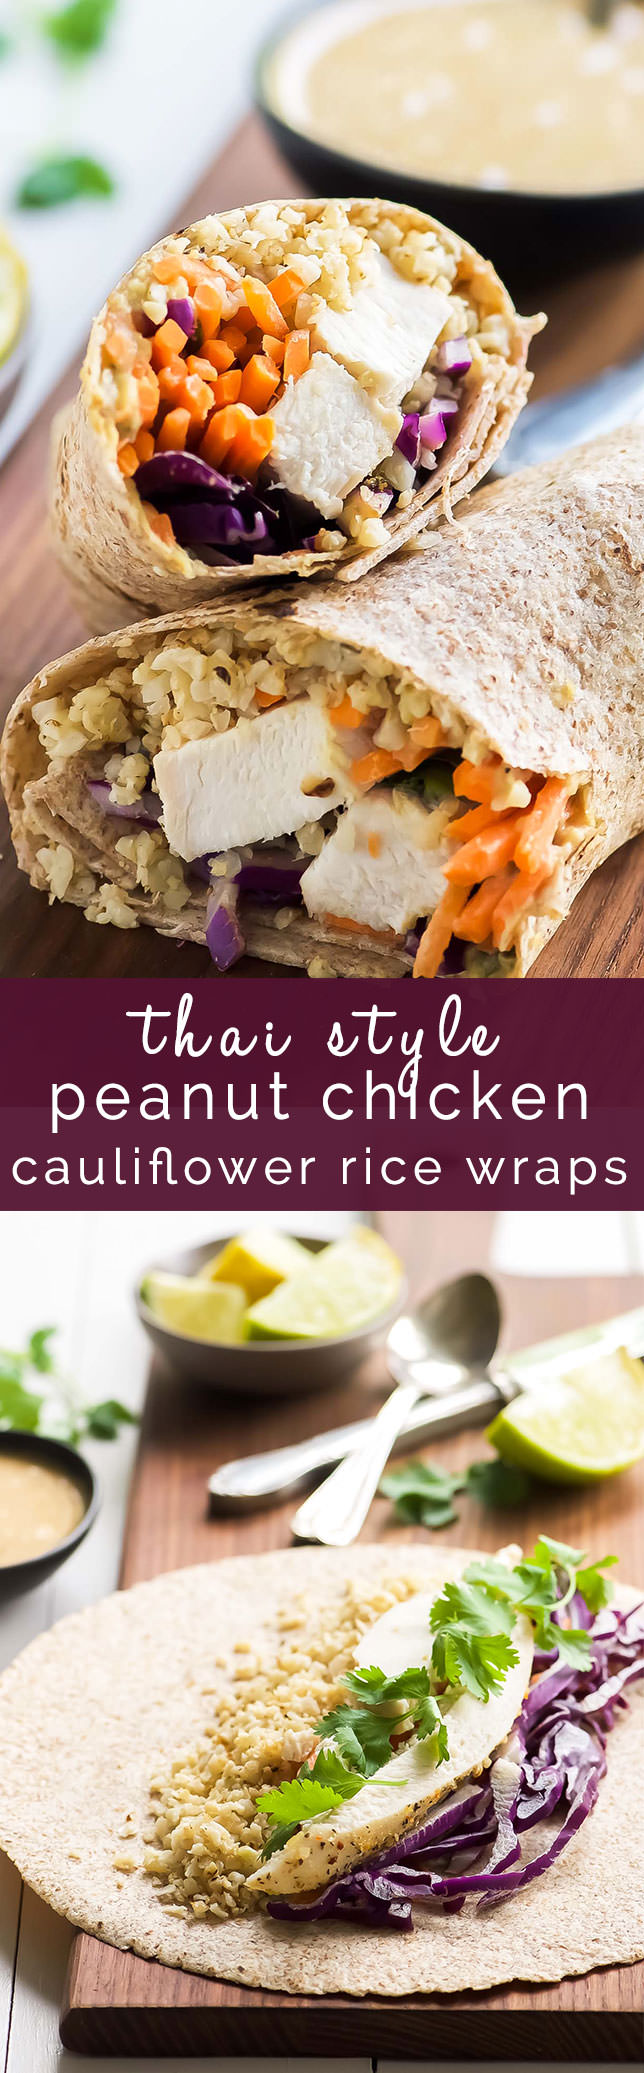 Thai Style Peanut Chicken Cauliflower Rice Wraps are a Starbucks copycat but with a heavy dose of veggies! Chicken, carrots, cabbage and crispy cauliflower rice all wrapped up and served with an addicting Peanut Coconut Sauce!